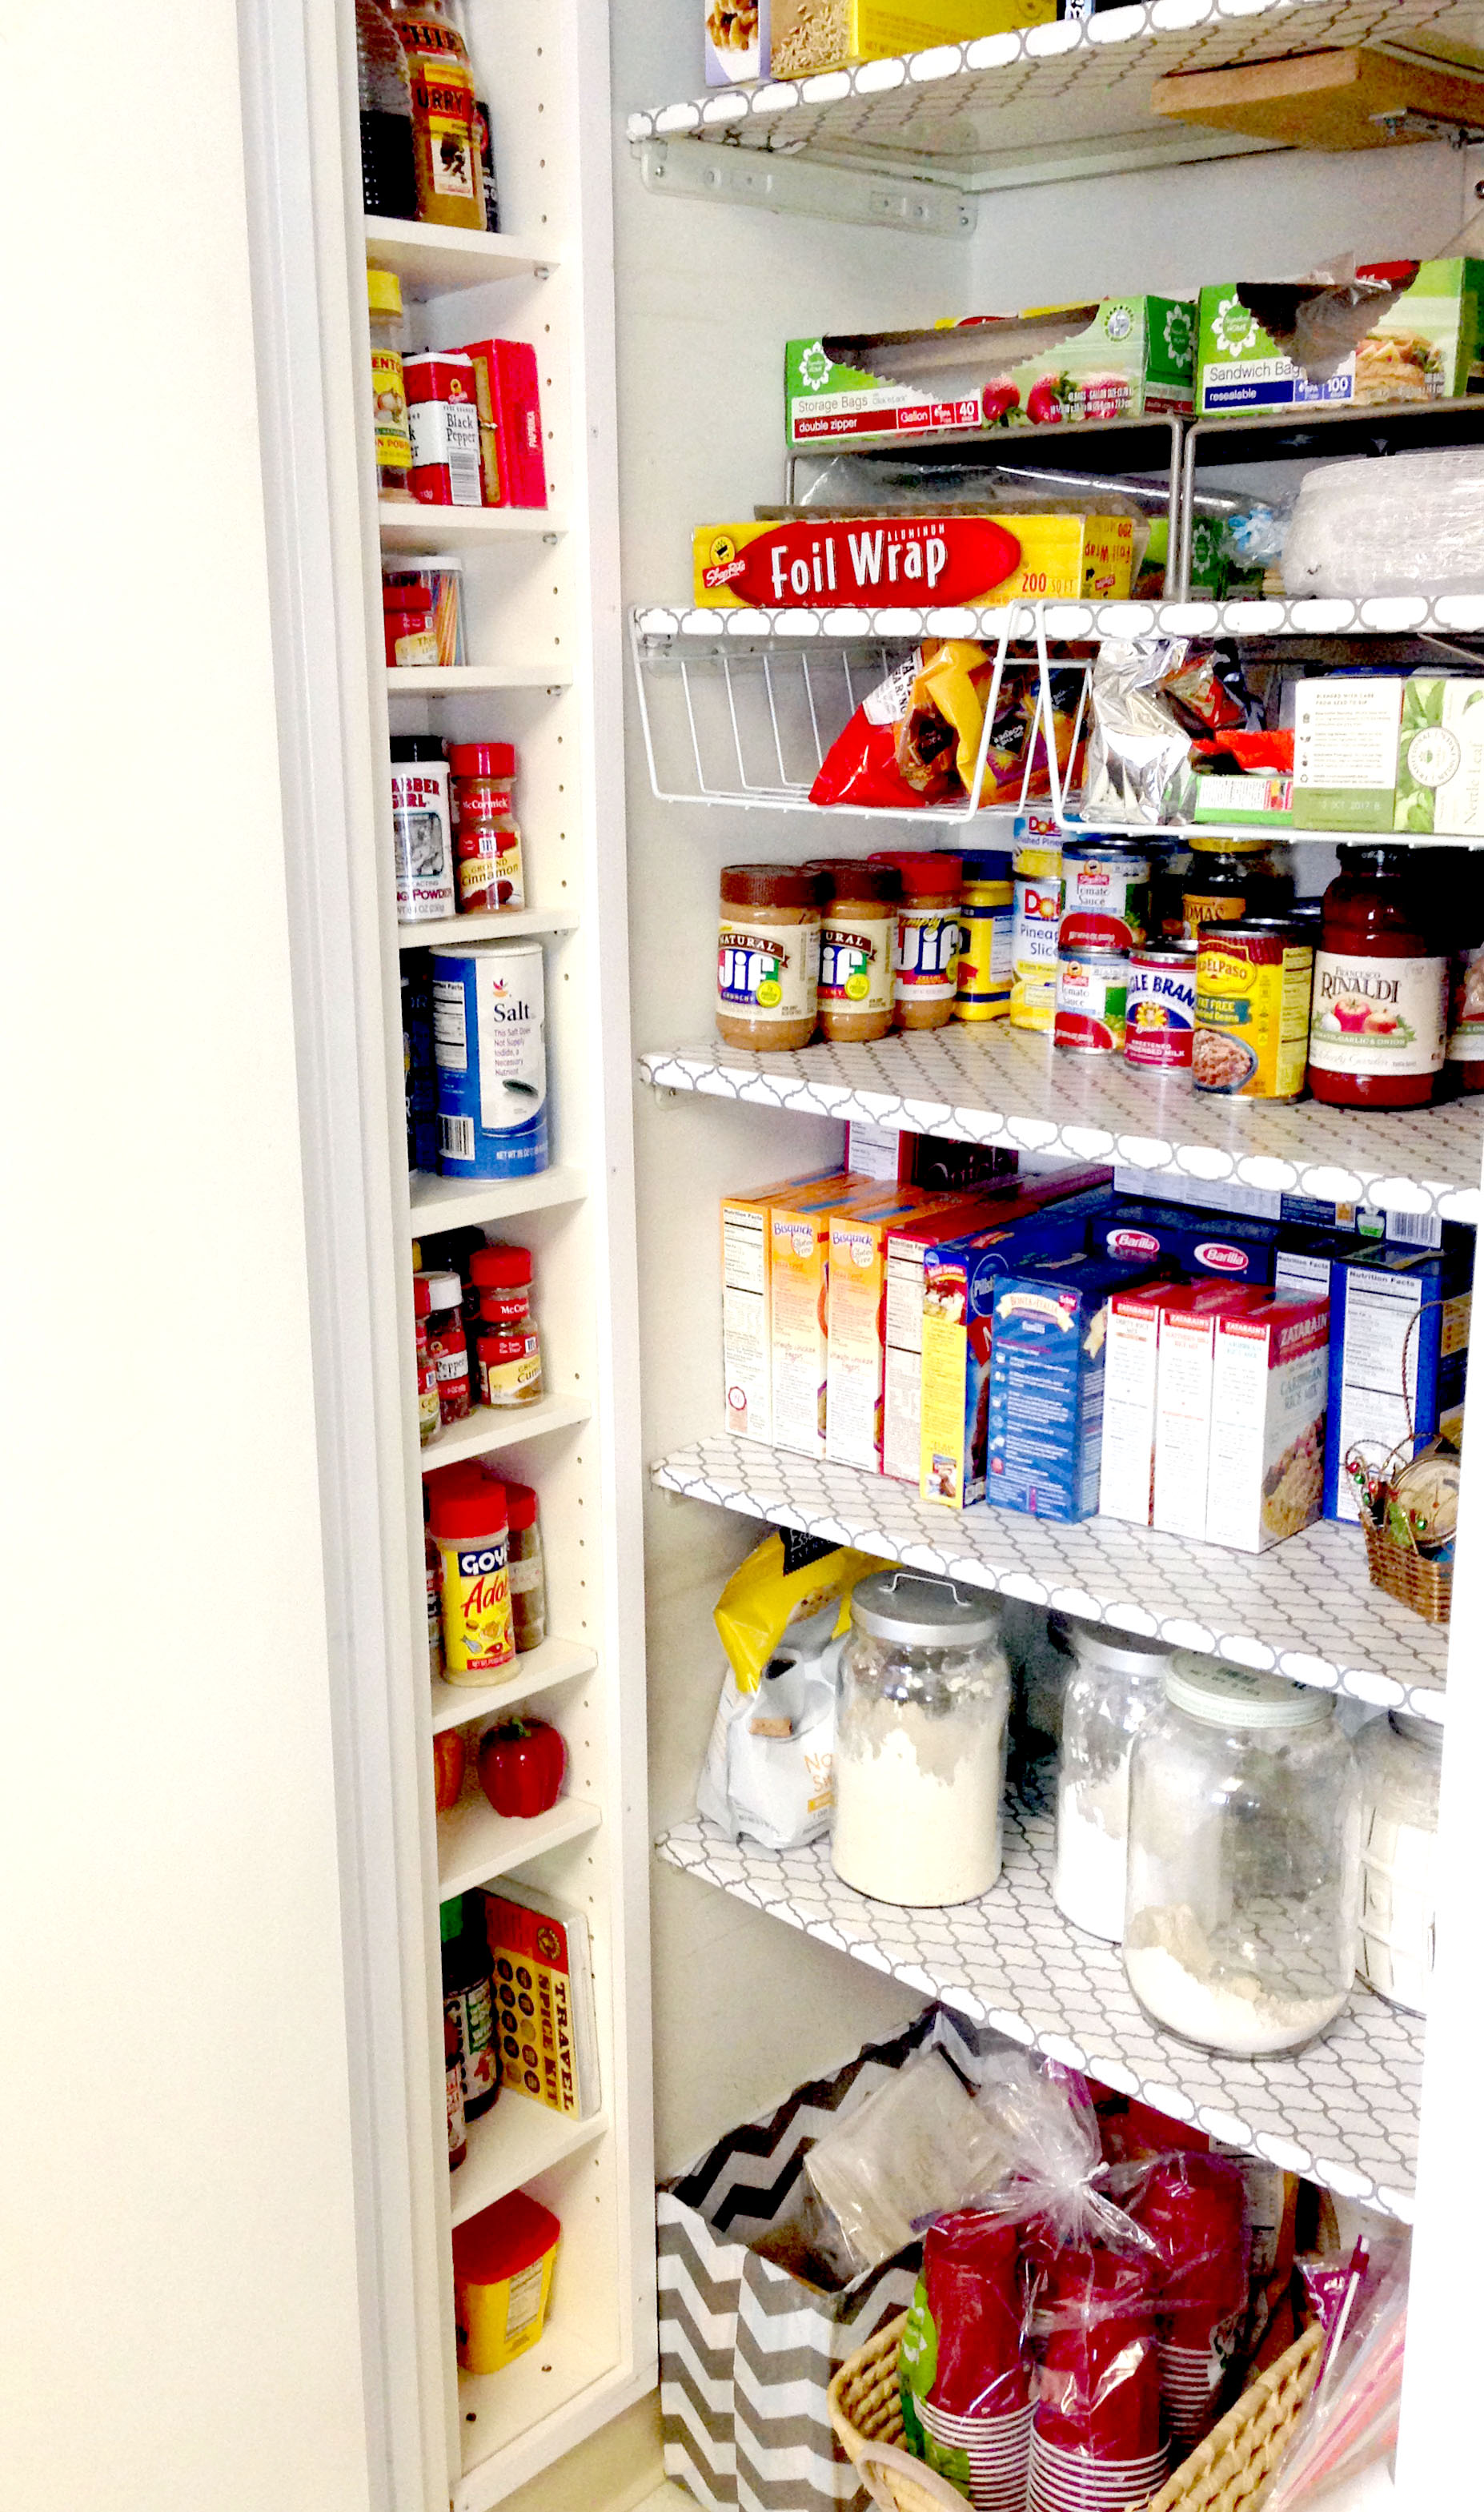 How to Upcycle a CD Tower into Pantry Shelving - Best DIY Projects